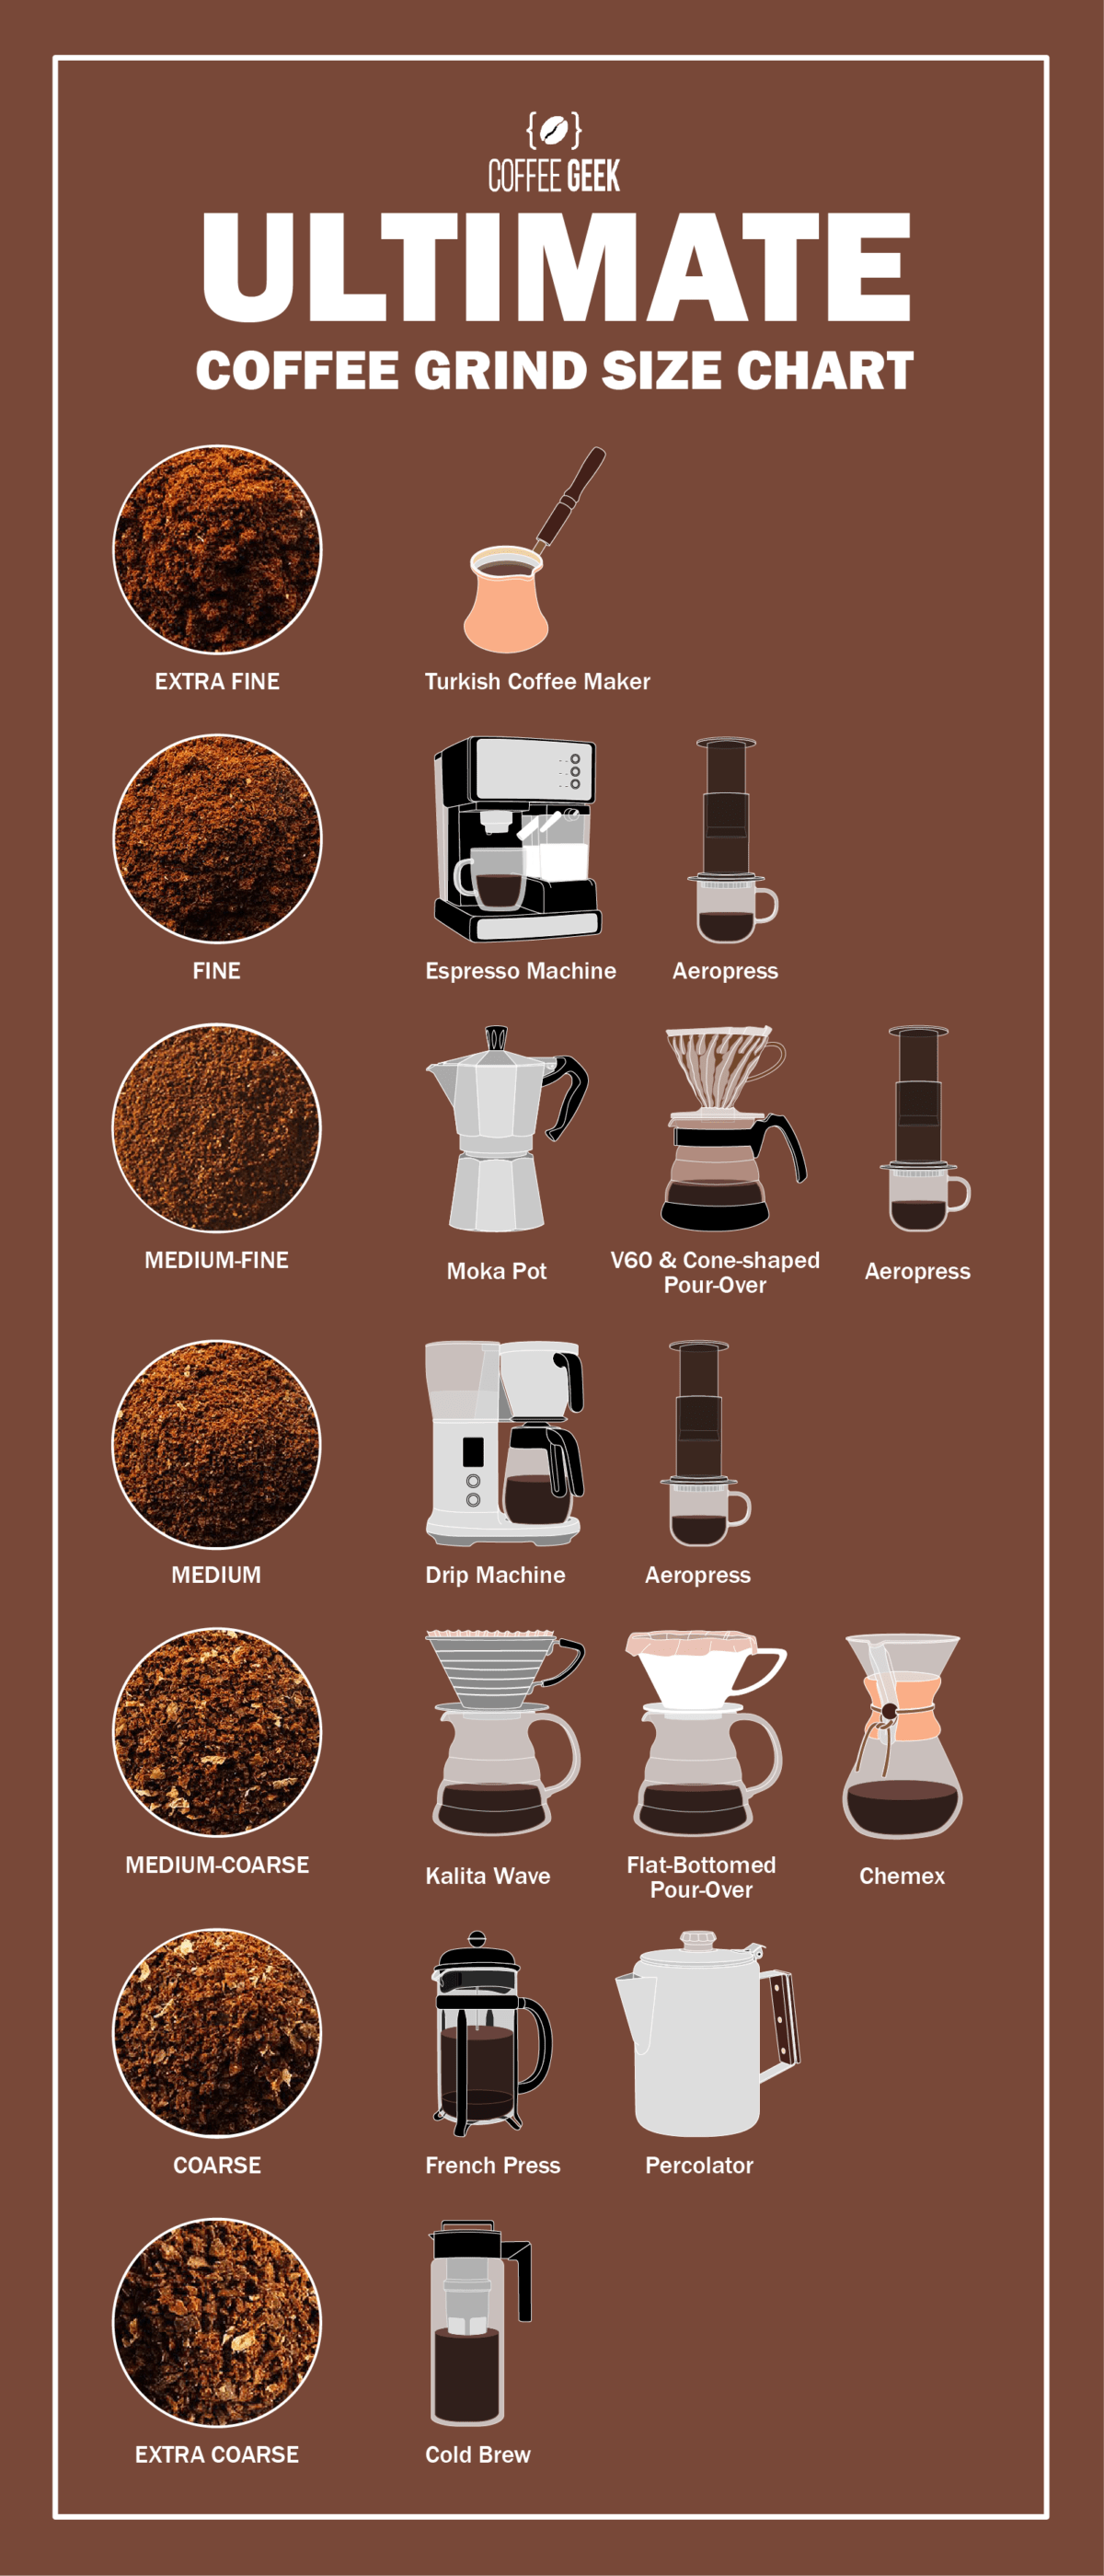 ultimate coffee grind size chart